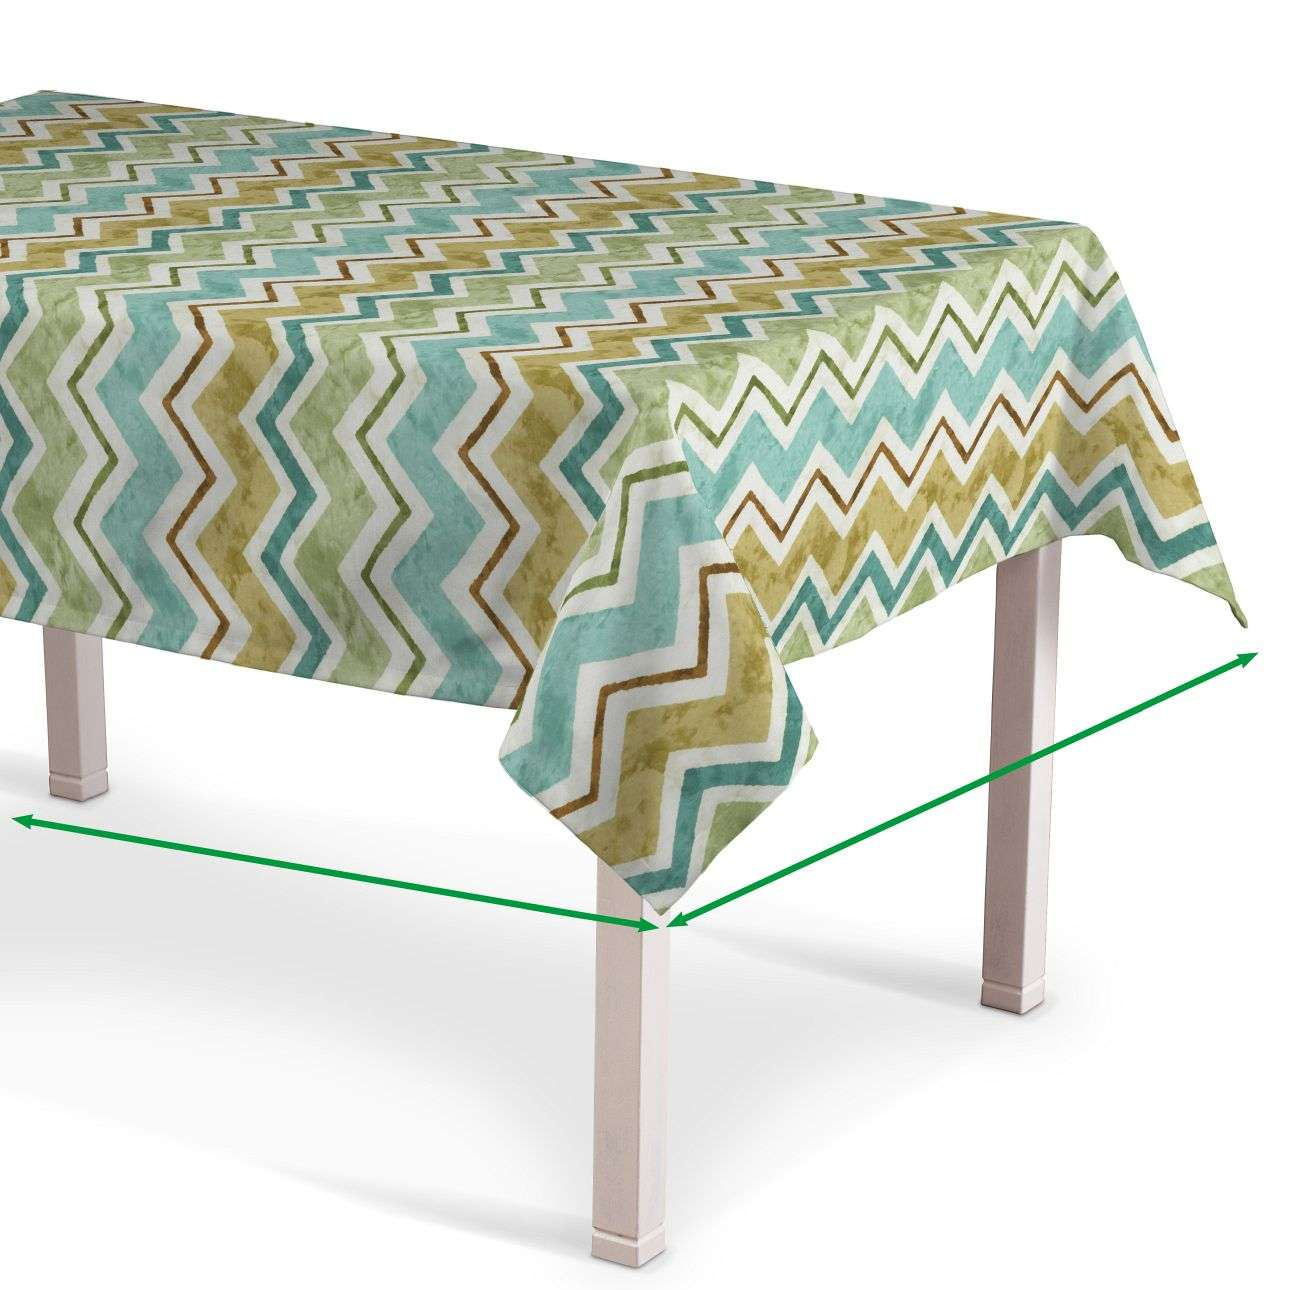 Rectangular tablecloth in collection Acapulco, fabric: 141-41